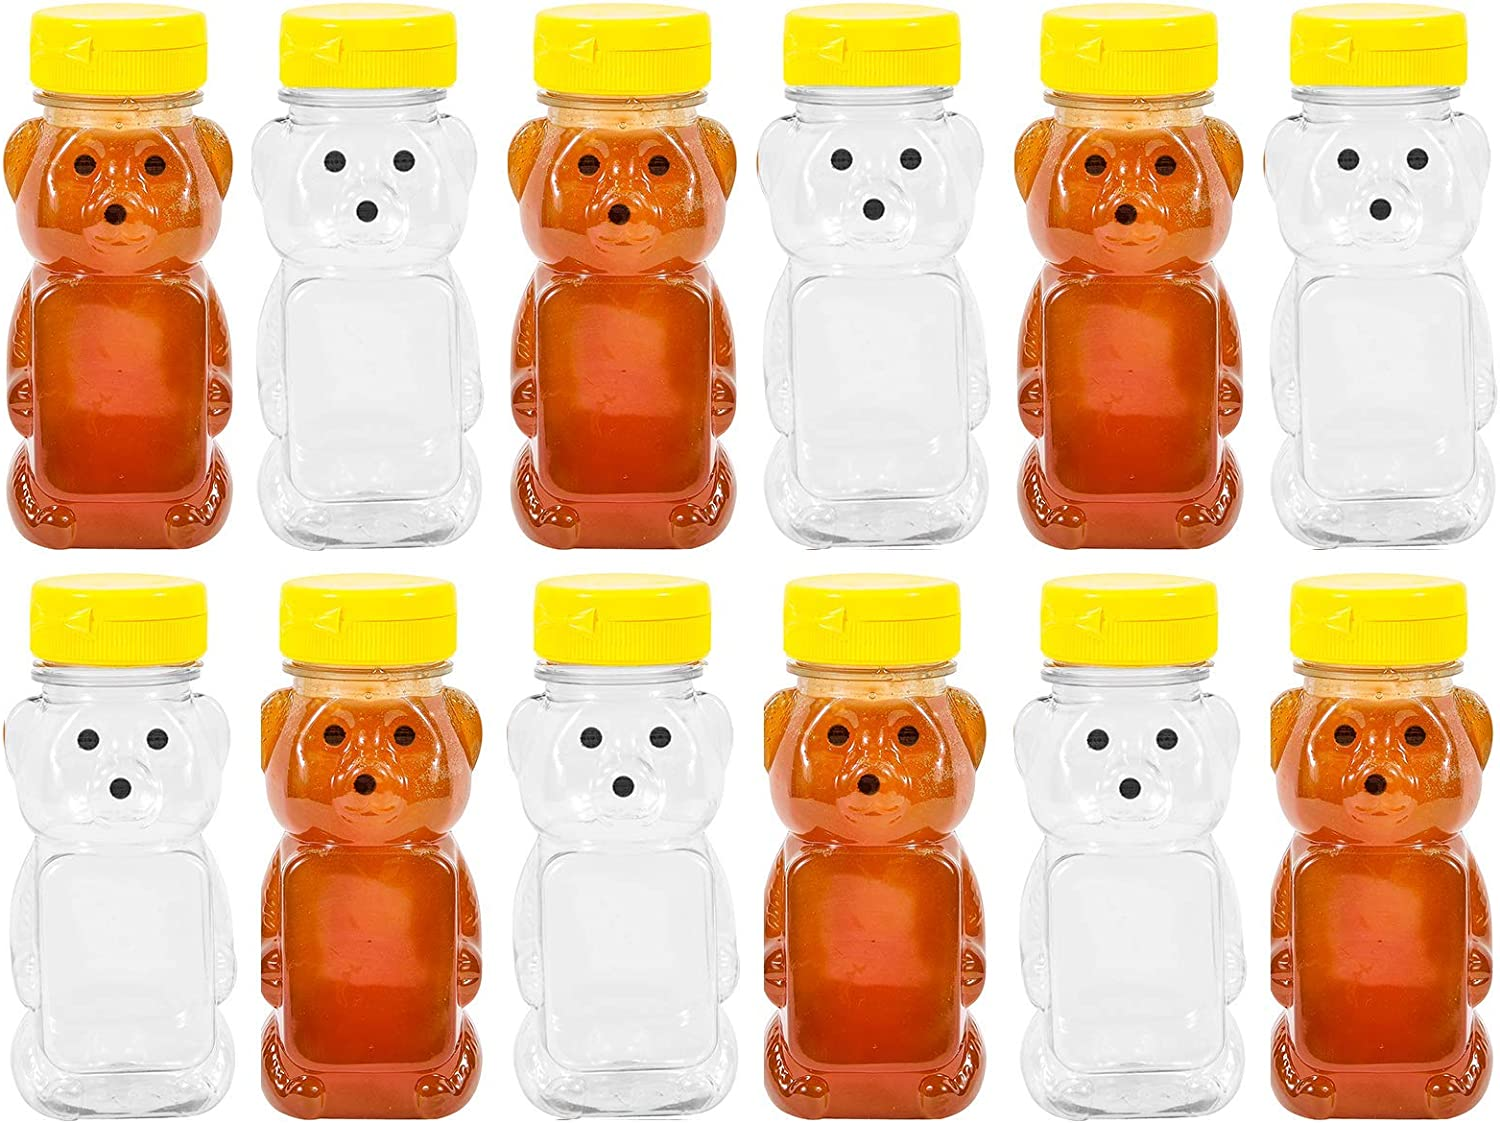 Amazon.com: PLASTIC 8 OZ BEAR SQUEEZE HONEY BOTTLE EMPTY WITH ...